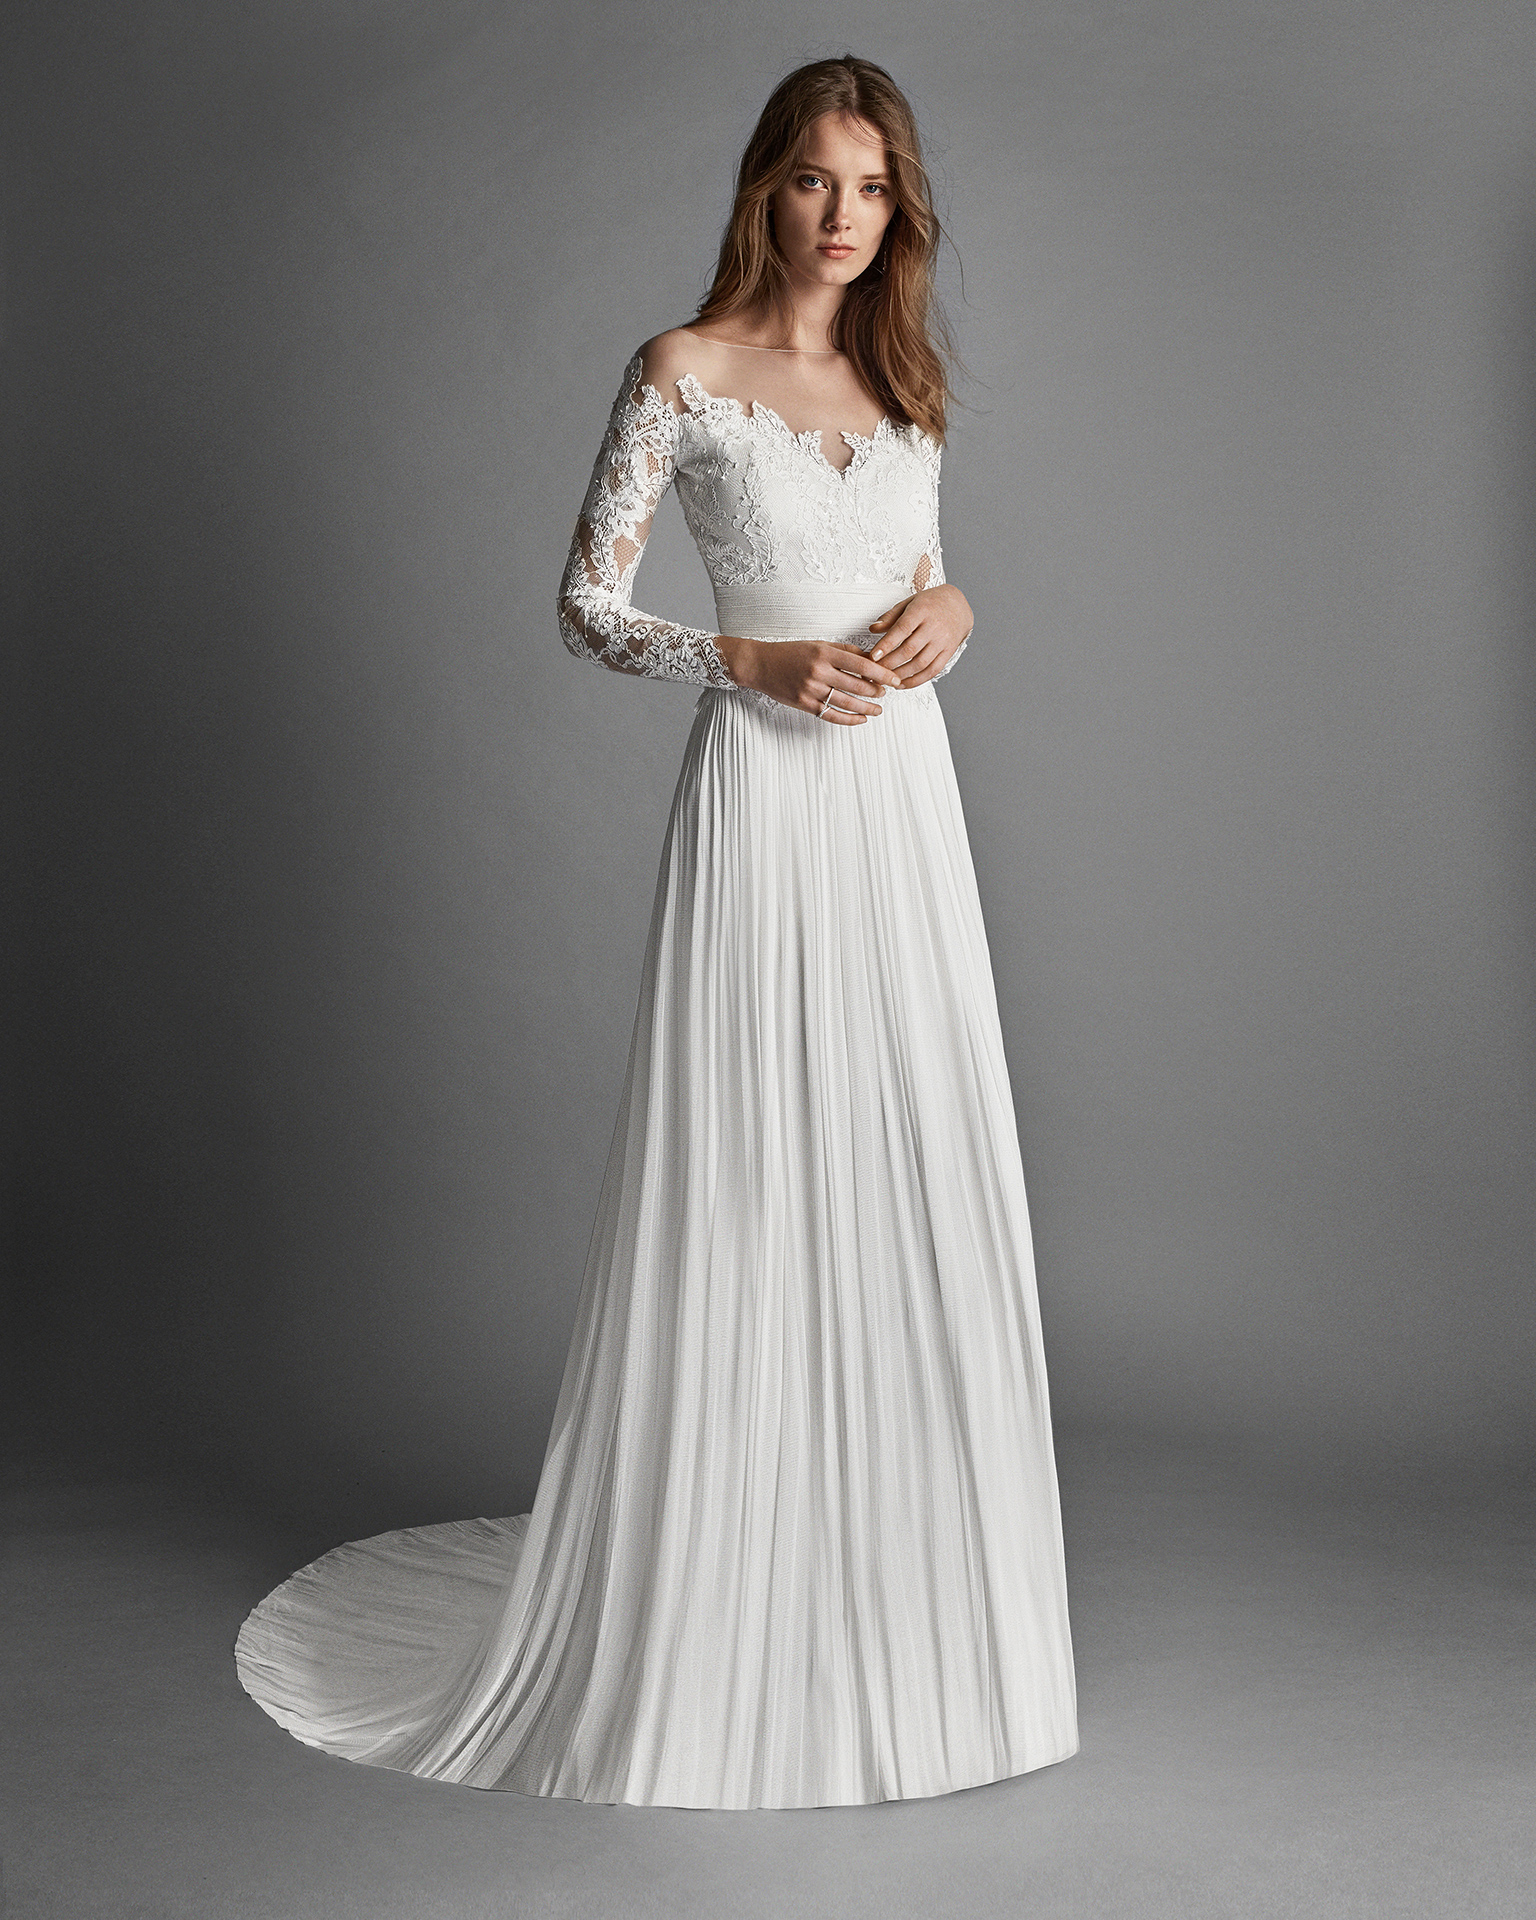 Classic-style muslin and lace wedding dress with long sleeves, low back and beadwork detail.